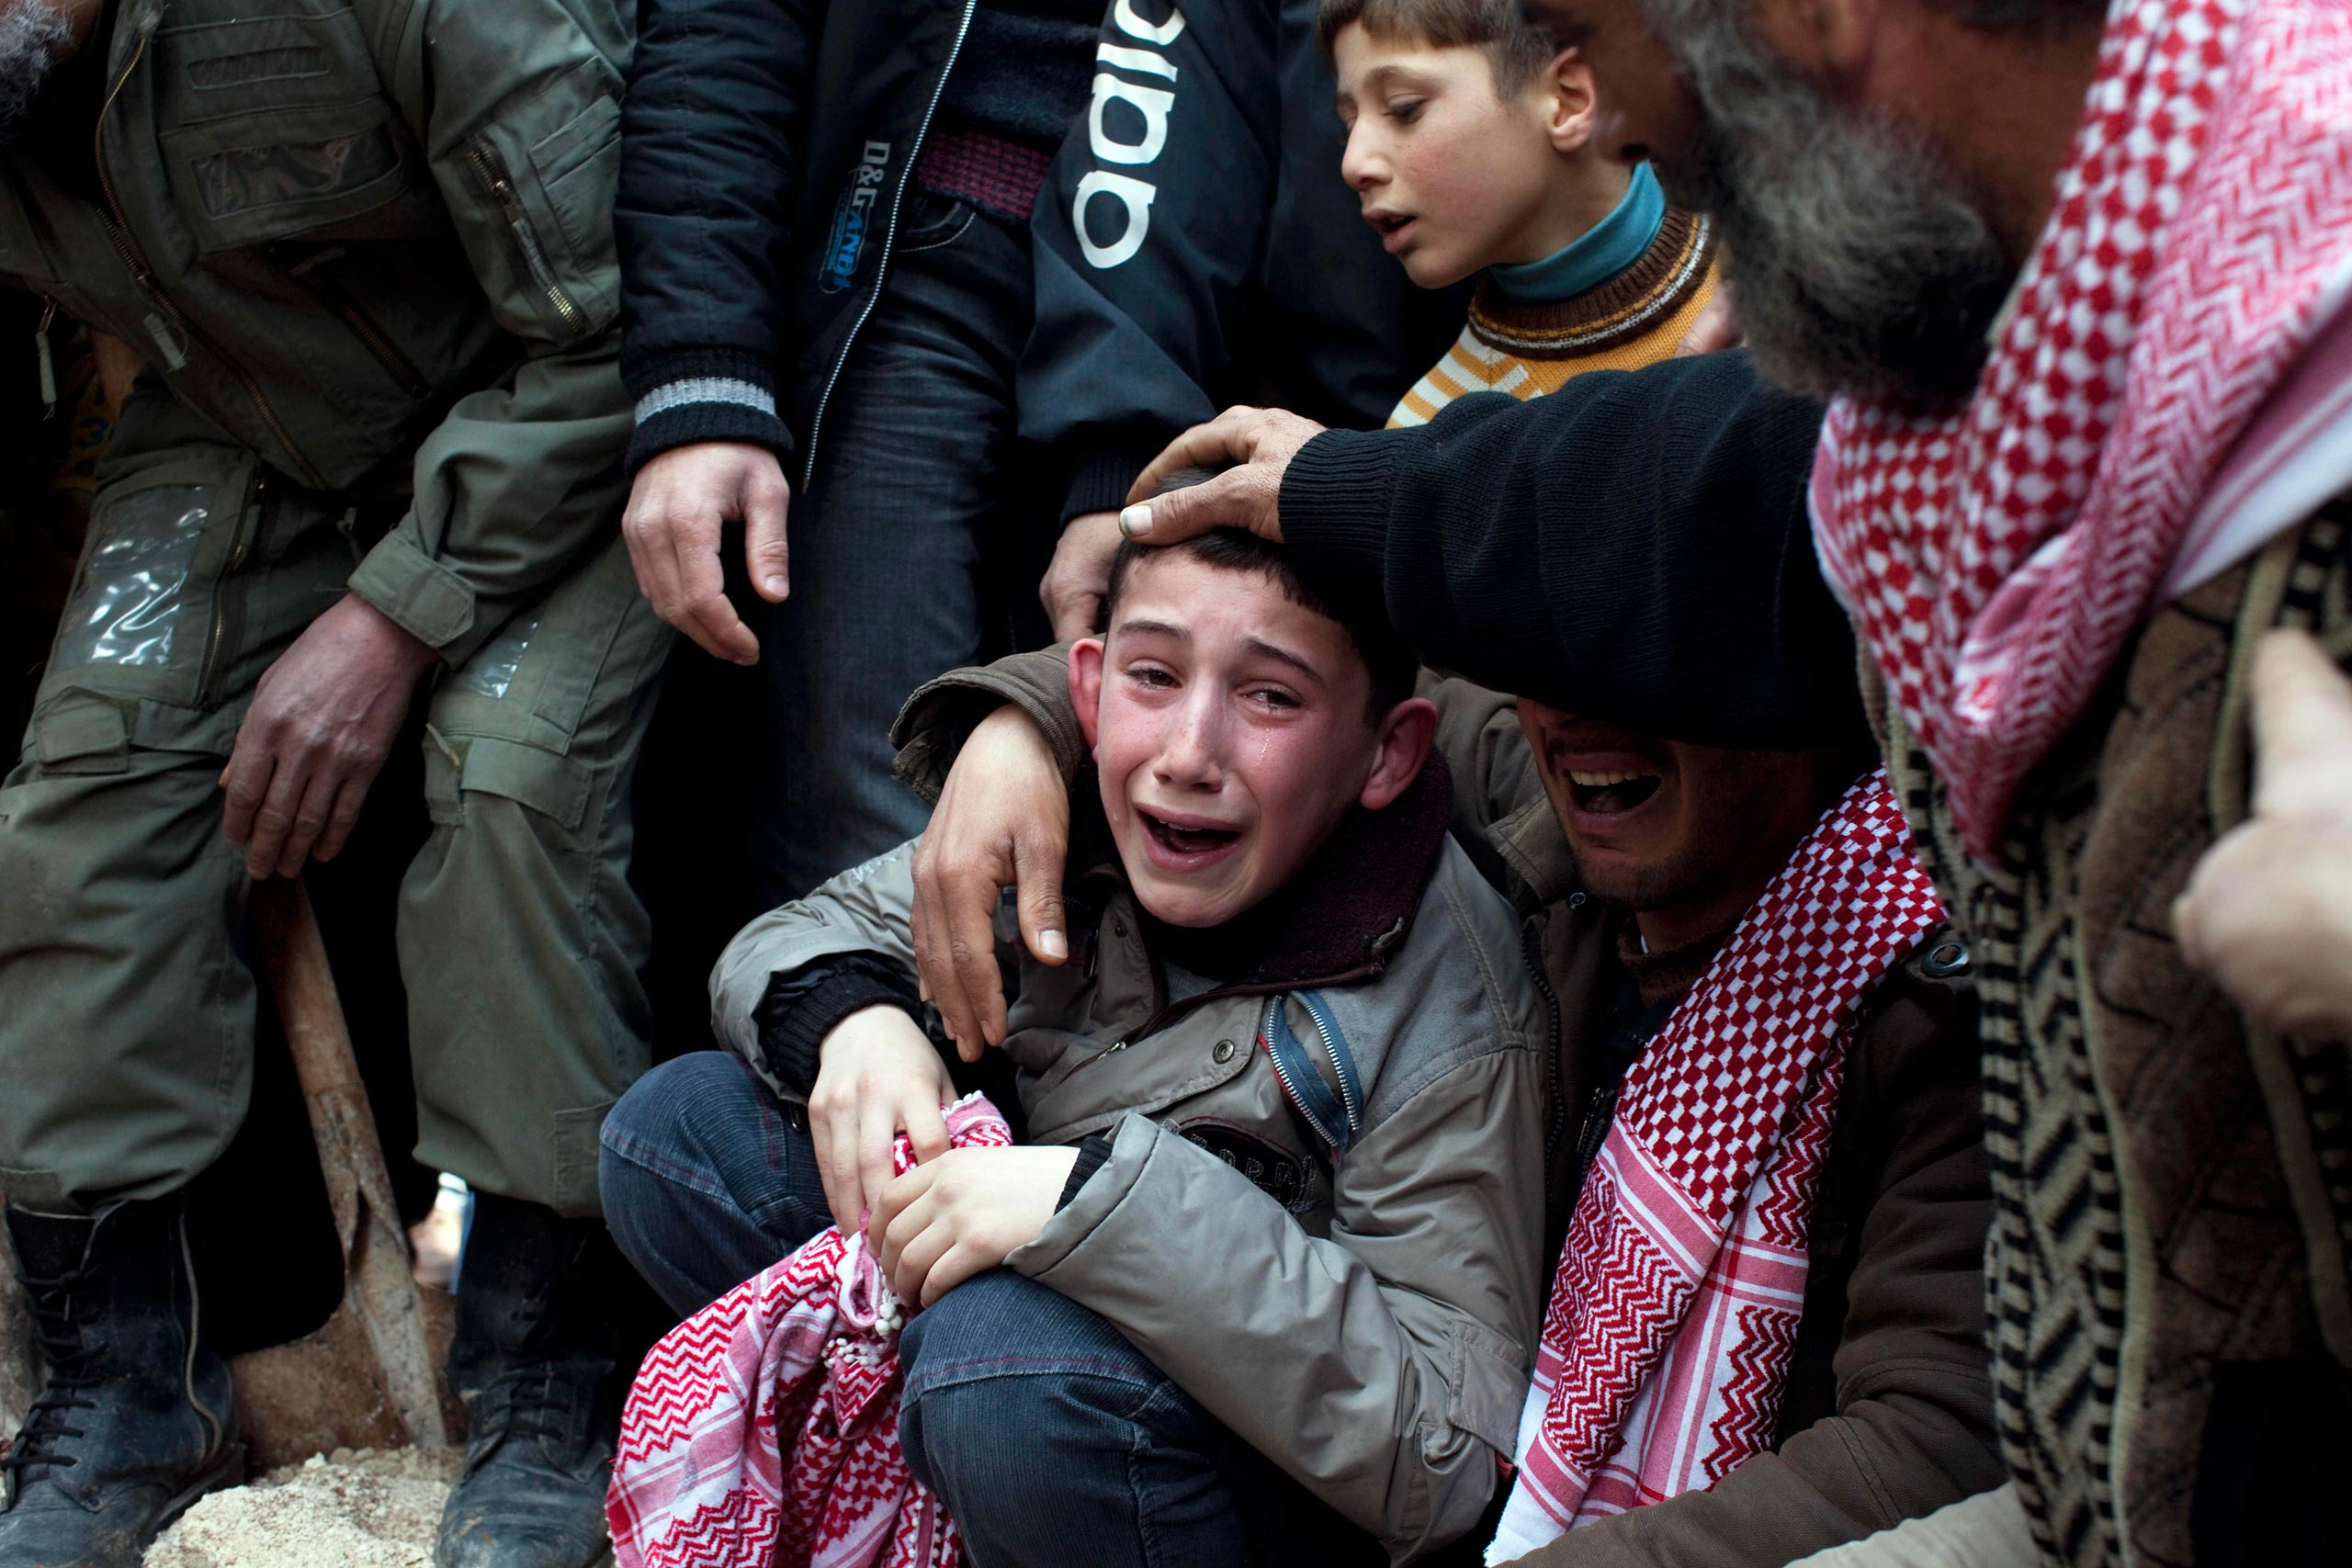 Ahmed, center, mourns his father Abdulaziz Abu Ahmed Khrer, who was killed by a Syrian Army sniper, during his funeral in Idlib, north Syria, on March 8, 2012.